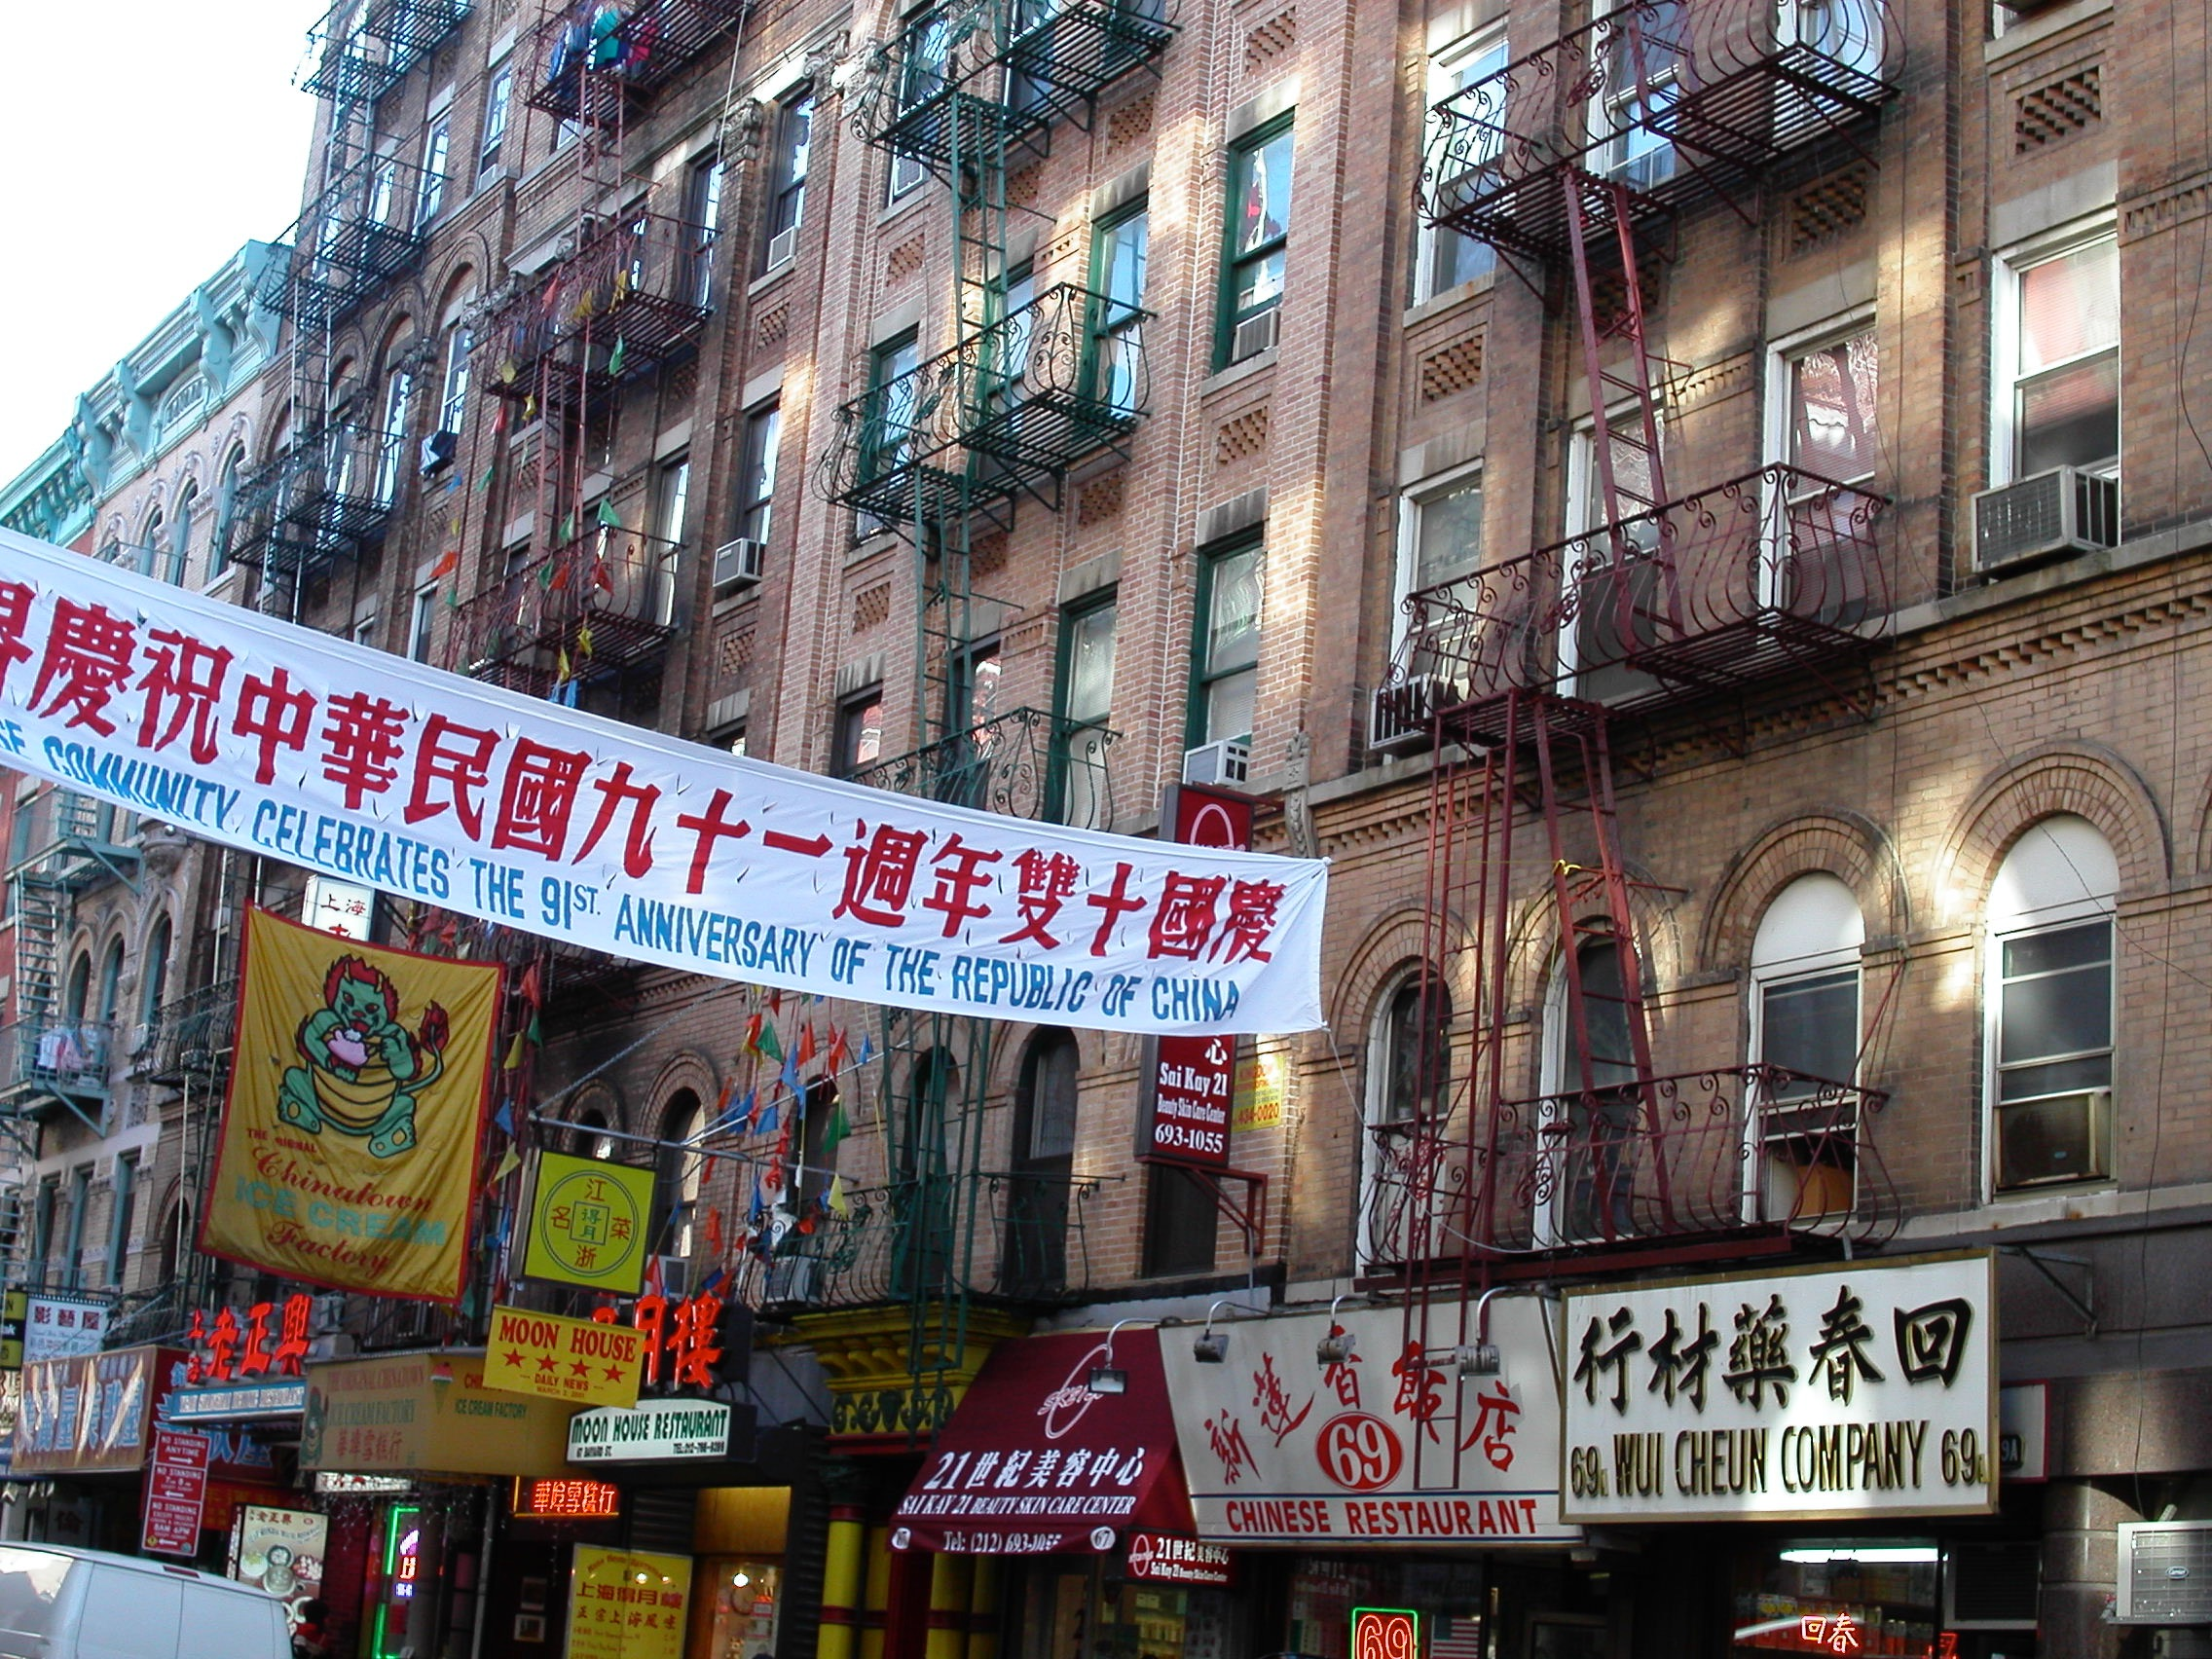 Chinatown, New York, 2002